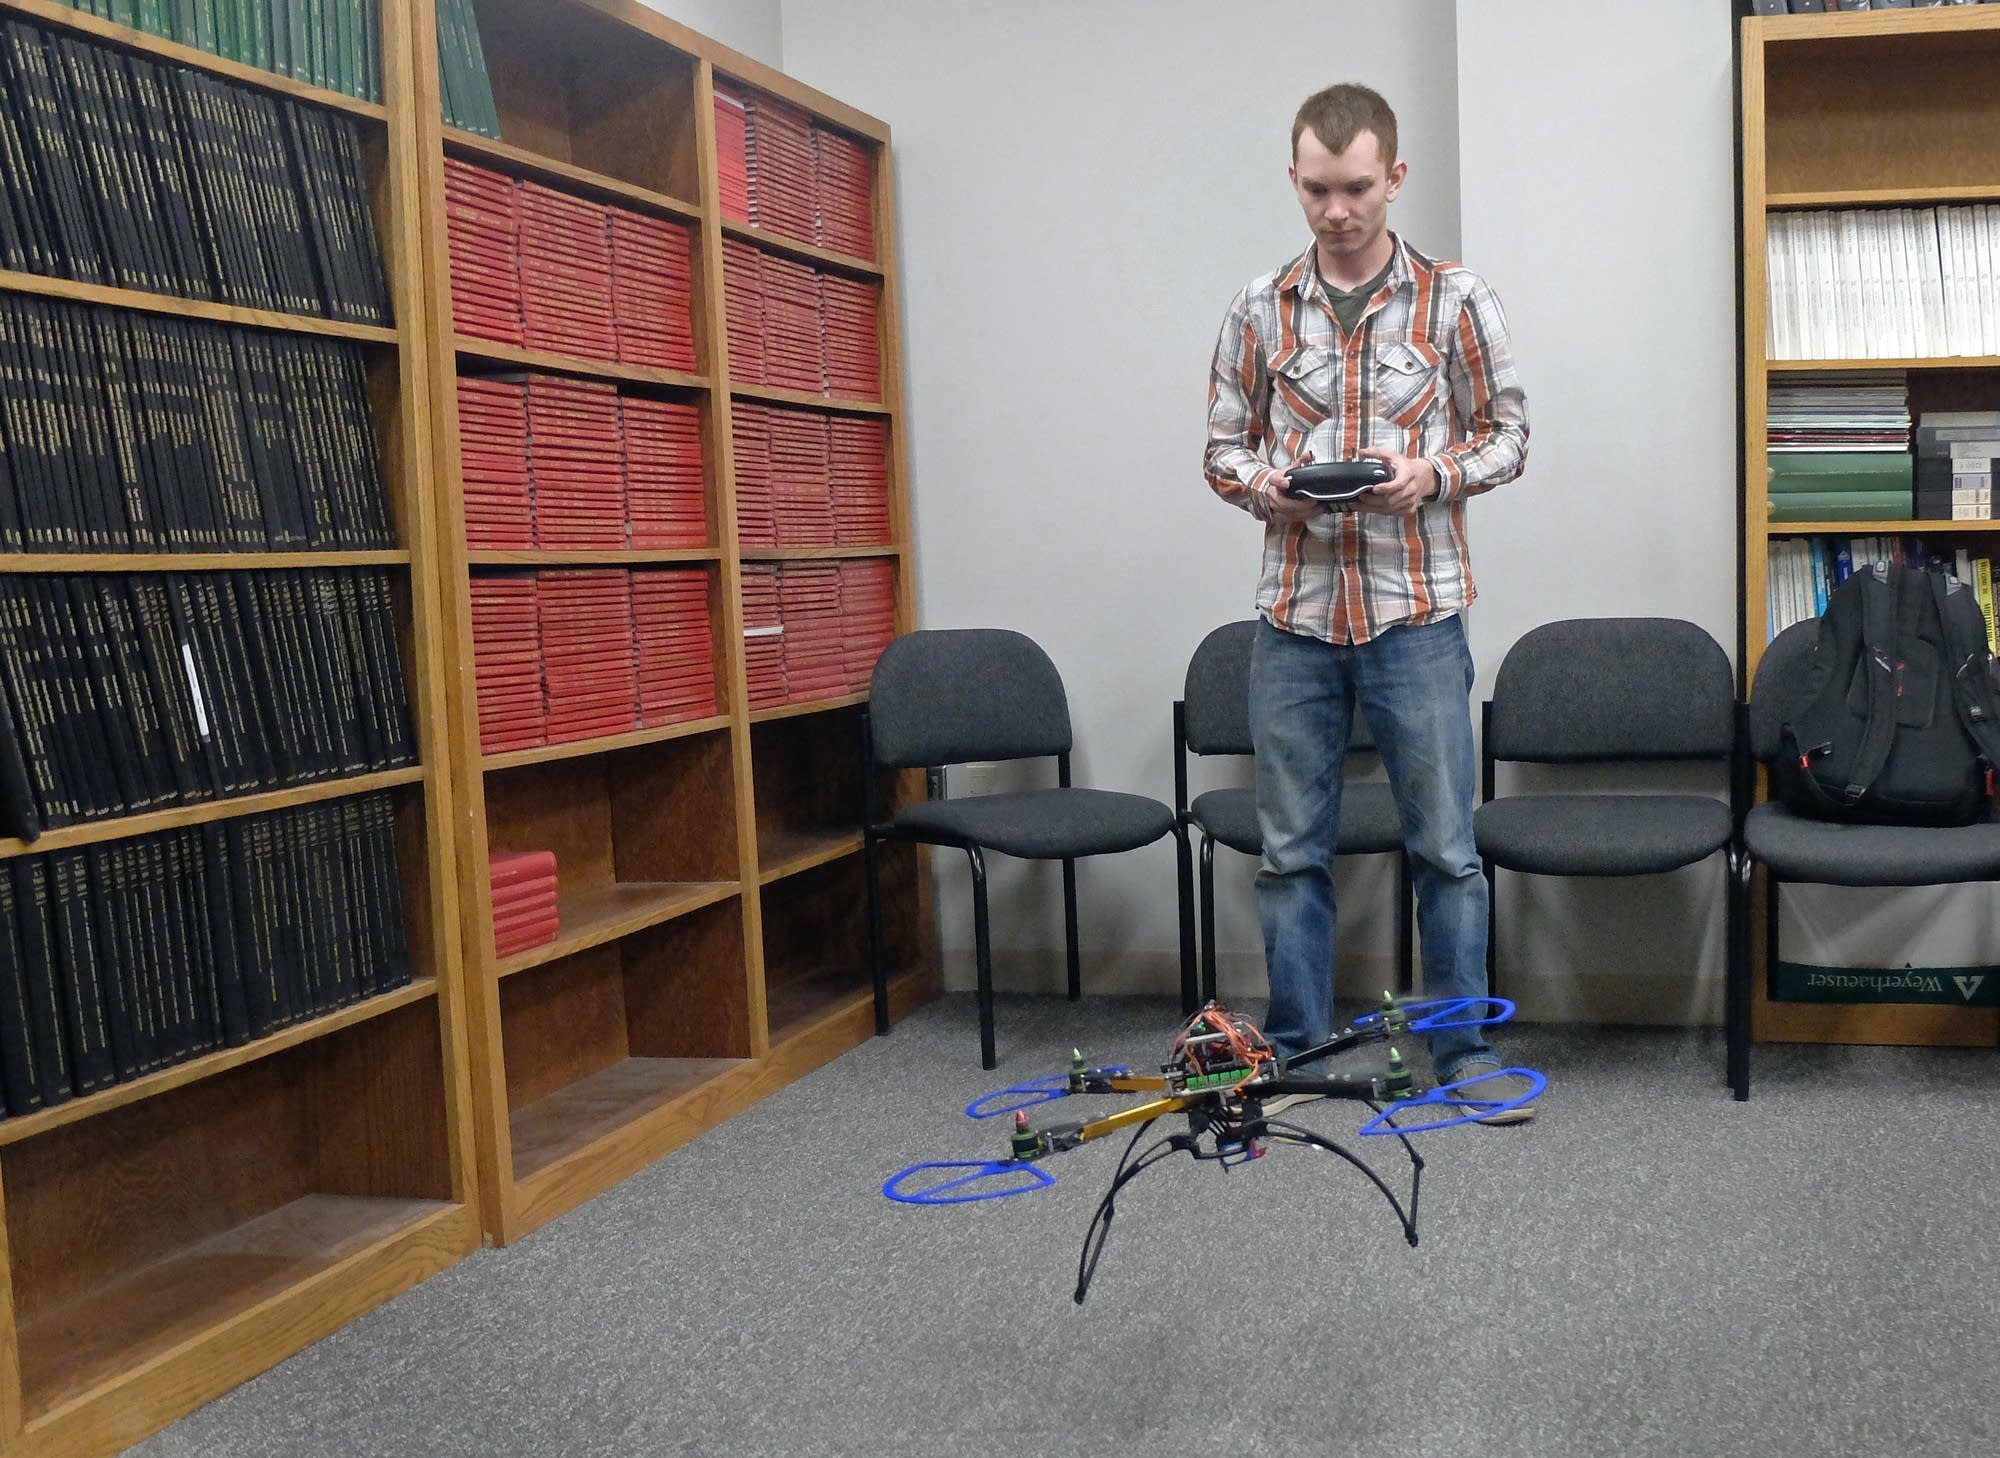 Engineering student Brady Goenner tests a small drone he helped design.